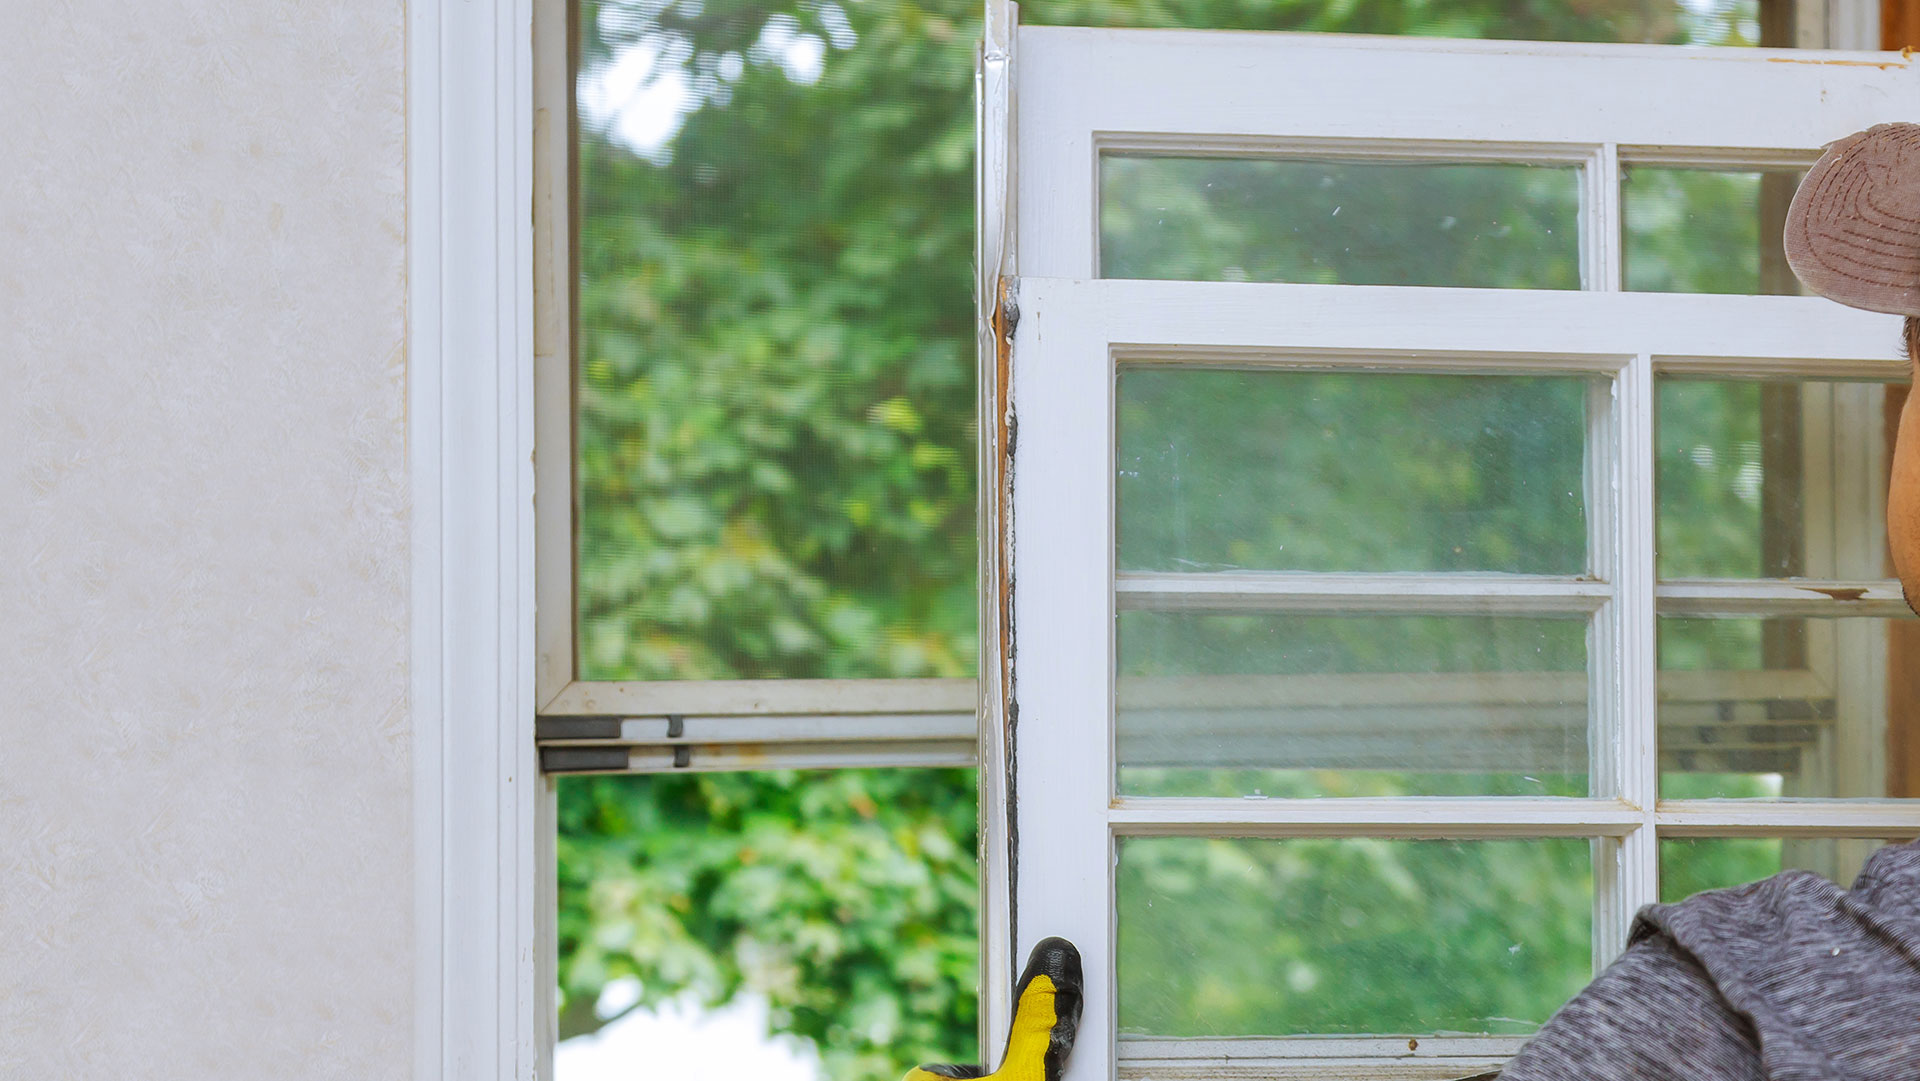 Lakewood Window Replacement, Siding Services and Window Installation